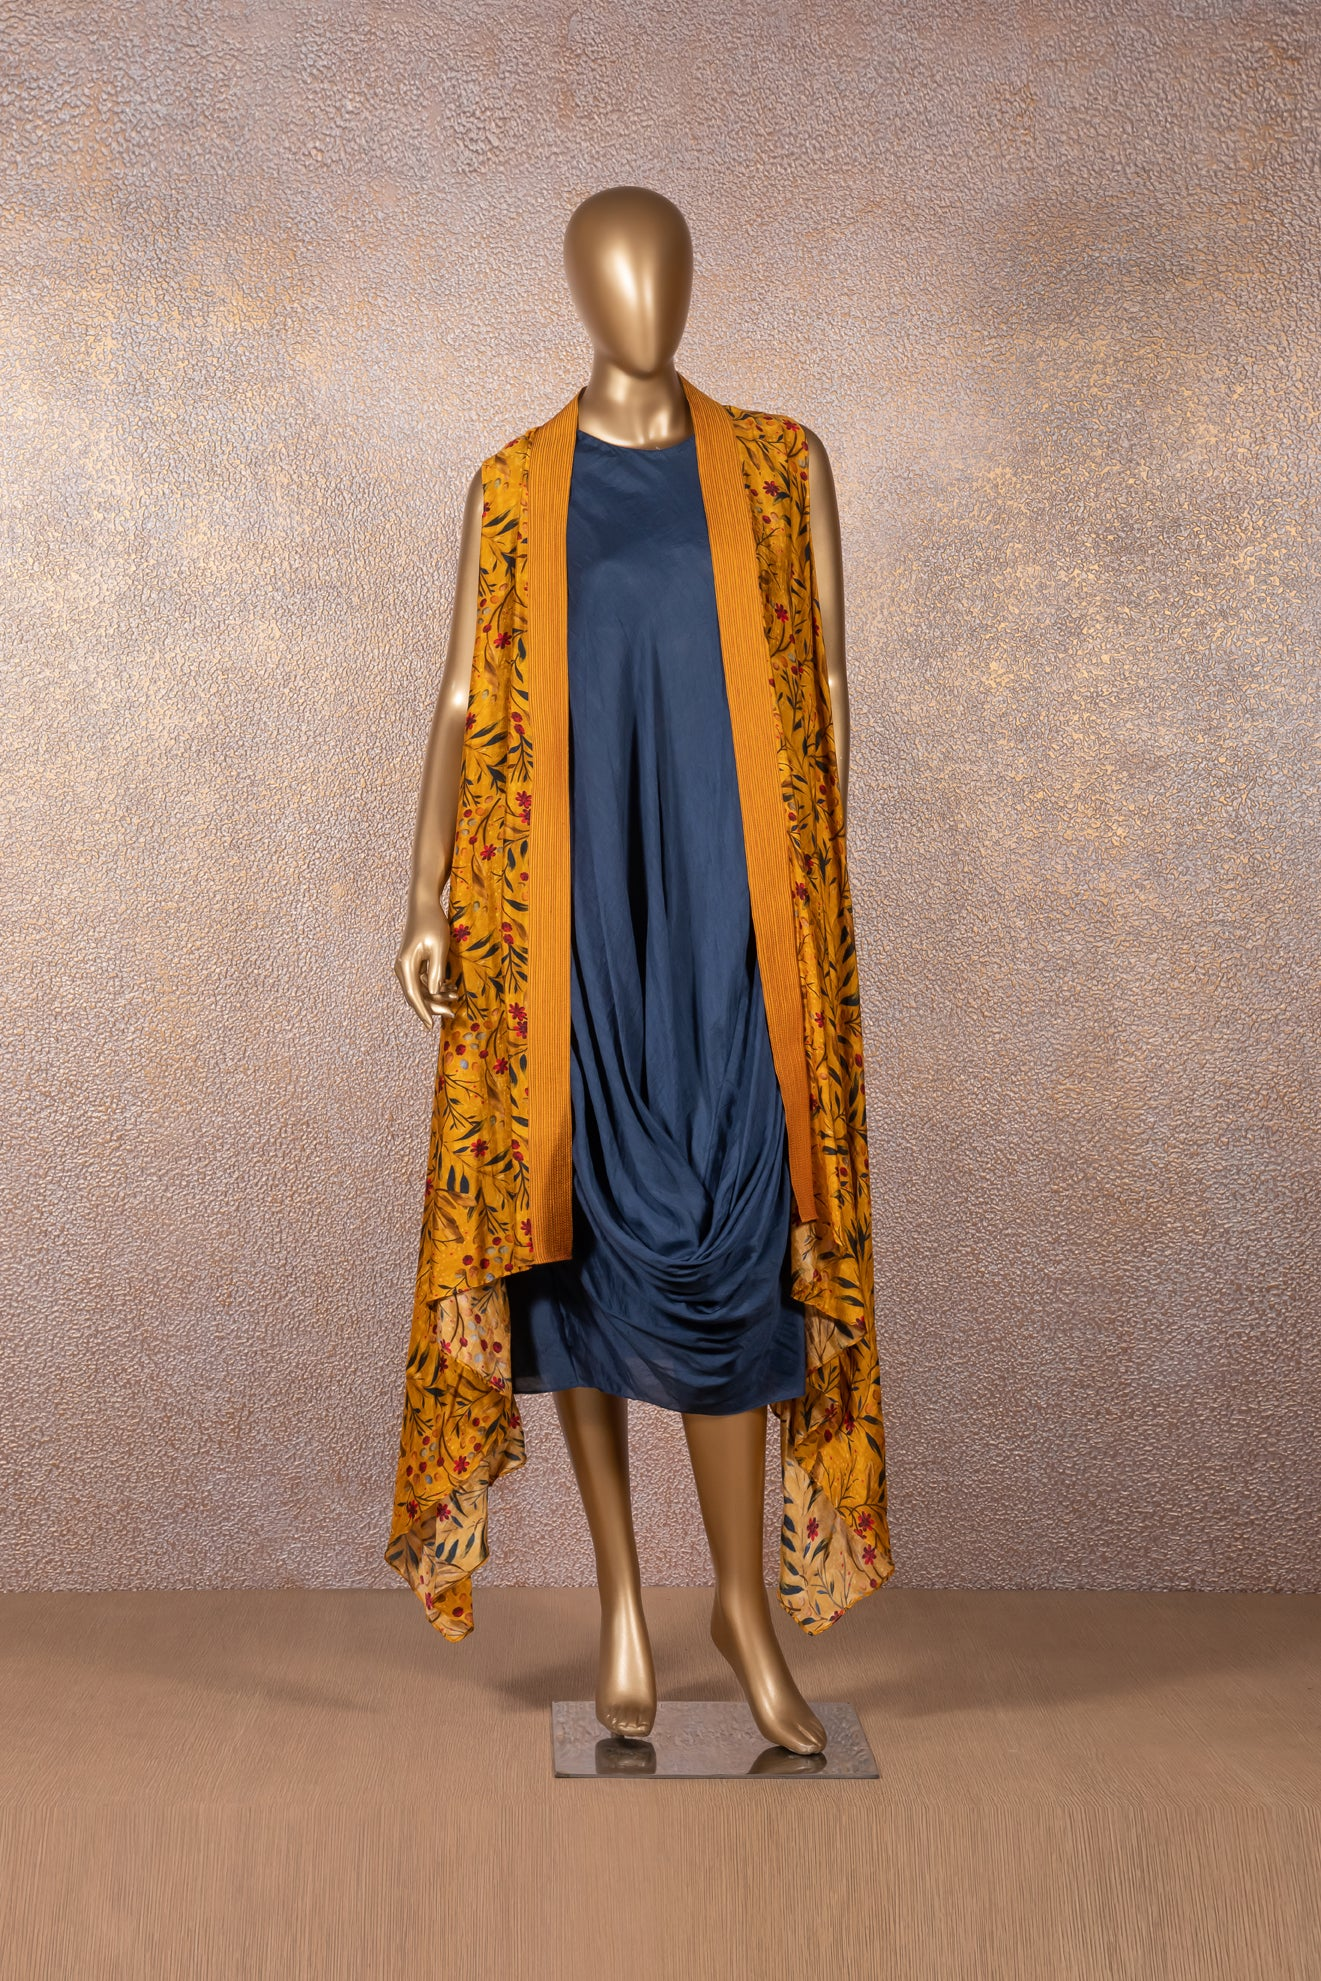 Blue Cowl Dress with Mustard Printed Jacket